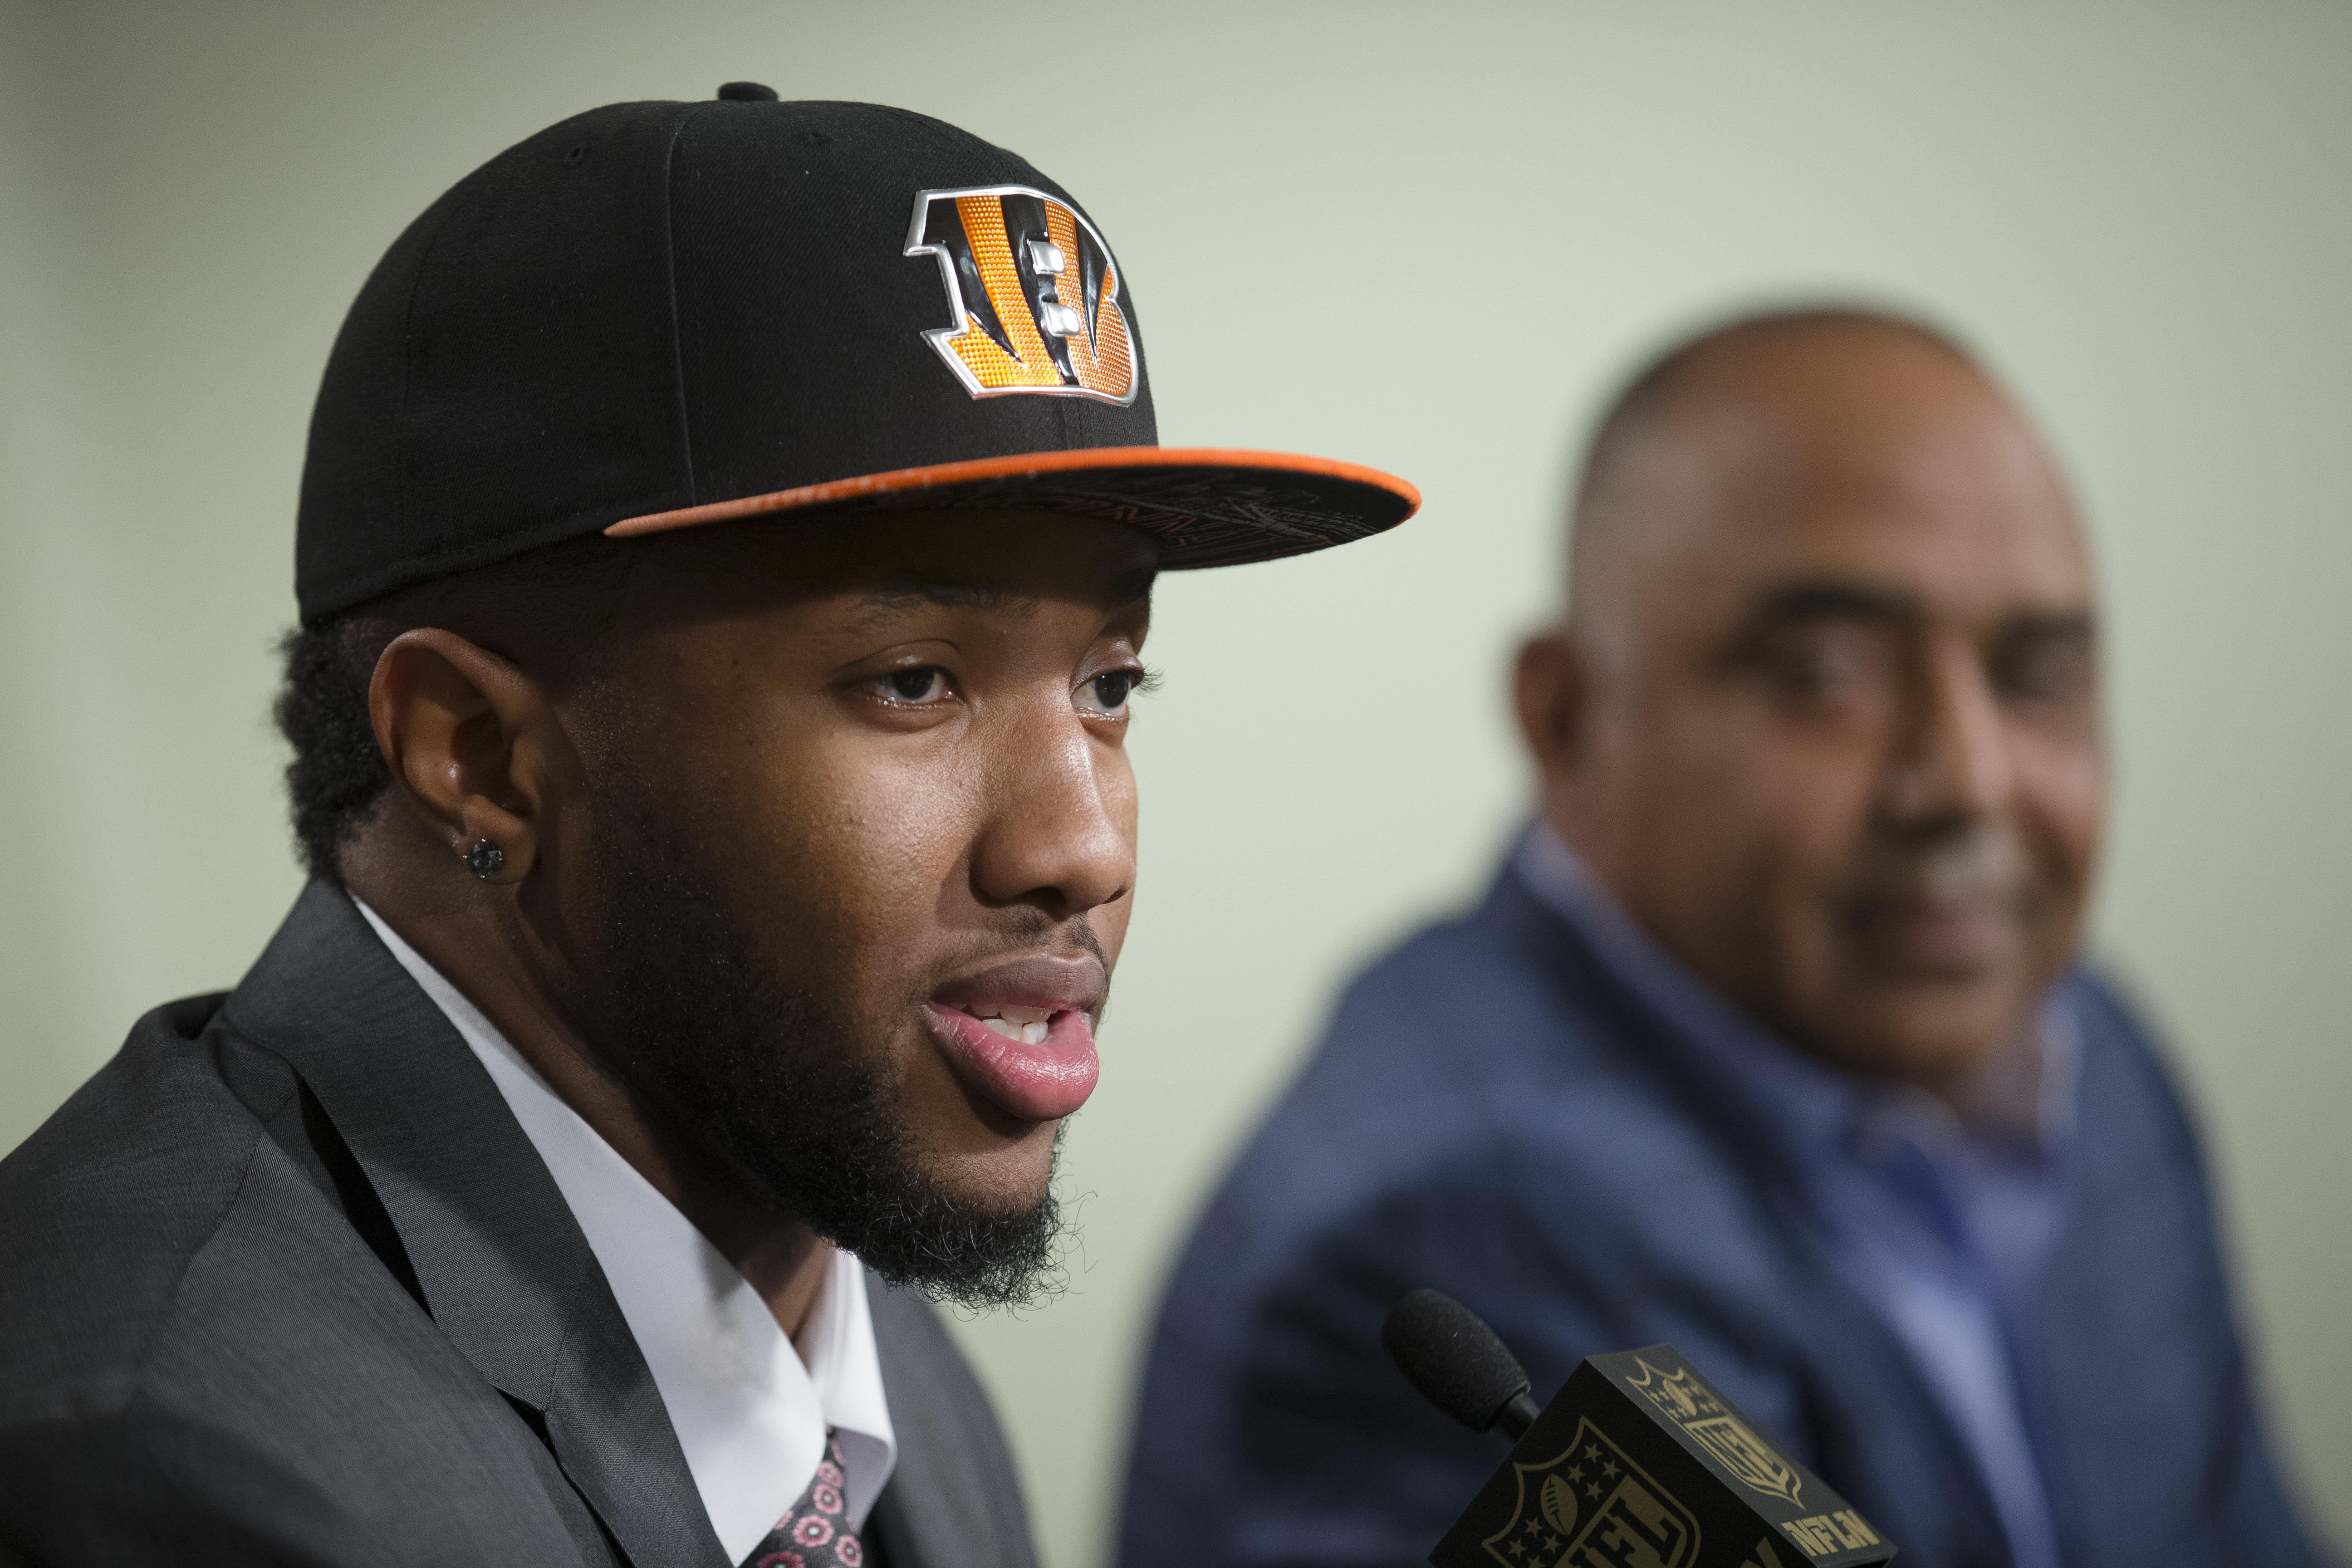 The Cincinnati Bengals first-round draft pick Cedric Ogbuehi speaks alongside head coach Marvin Lewis, right, during a news conference at Paul Brown Stadium, Friday, May 1, 2015, in Cincinnati. The former Texas A&M offensive lineman was selected by the Be